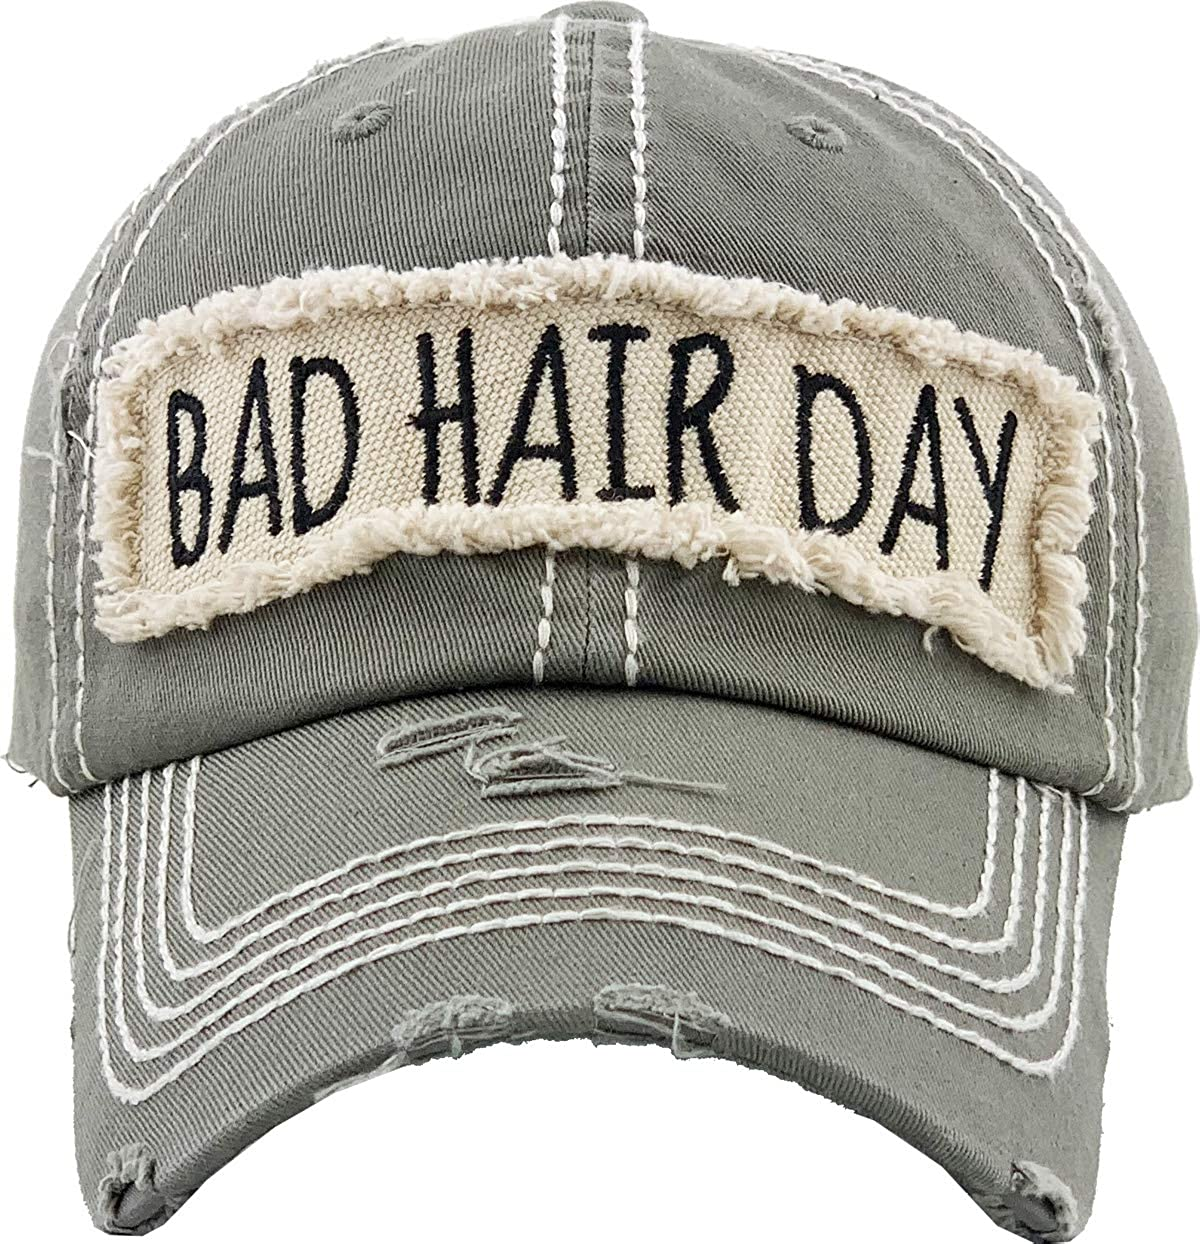 Bad Hair Day Vacation Beach Camping Womens Baseball Cap Distressed Vintage Unconstructed Embroidered Patch Hat